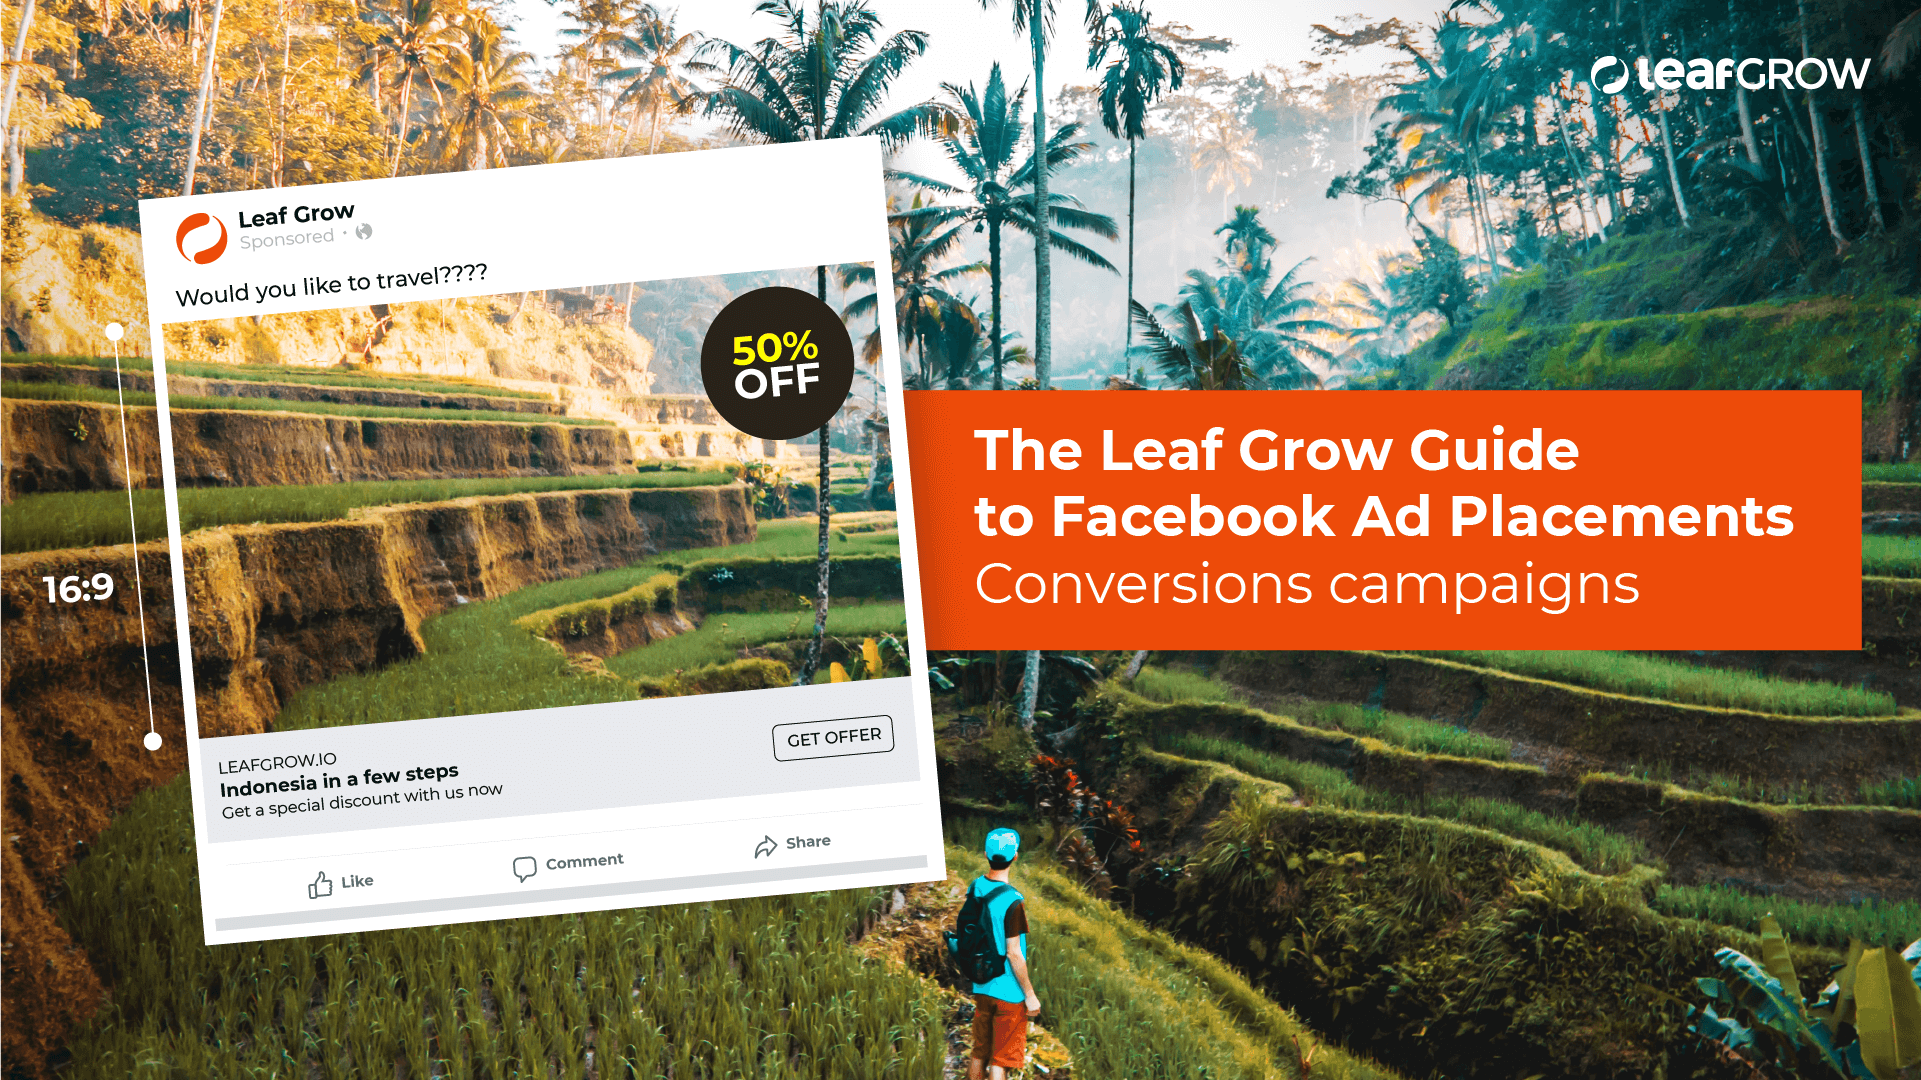 The Leaf Grow Guide to Facebook Ad Placements - Conversions campaigns-01.png